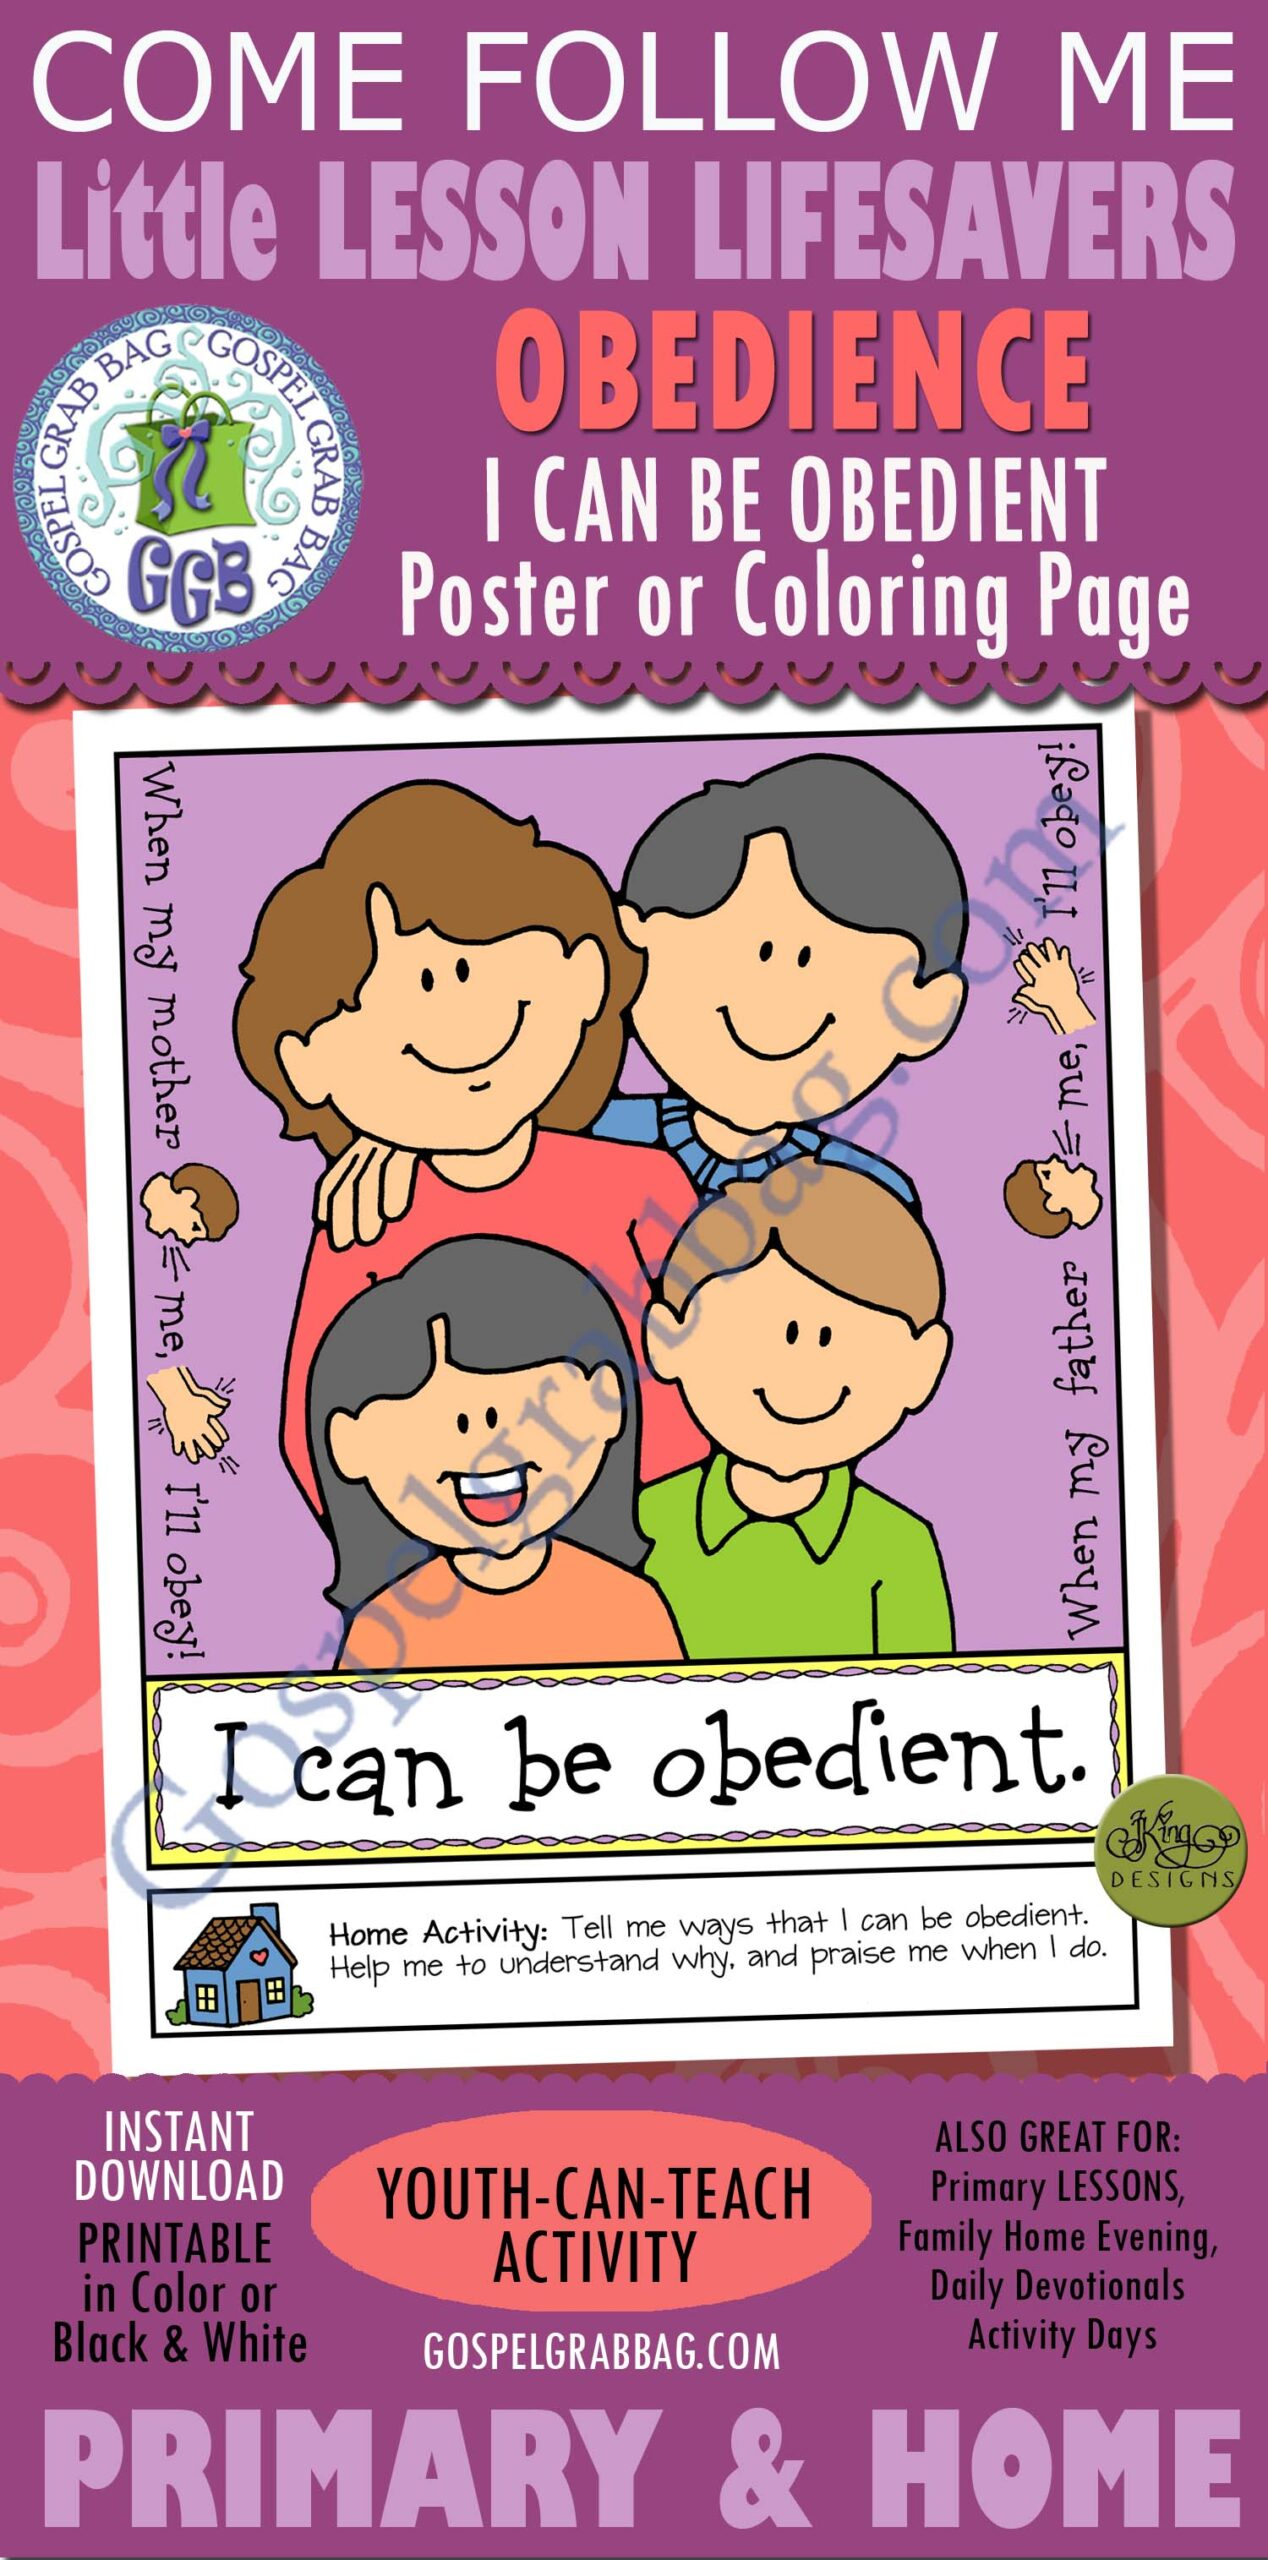 obedience primary lesson helps nursery obey sunbeam can obedient gospel grab bag coloring coloring pages I Can Be Obedient Coloring Page